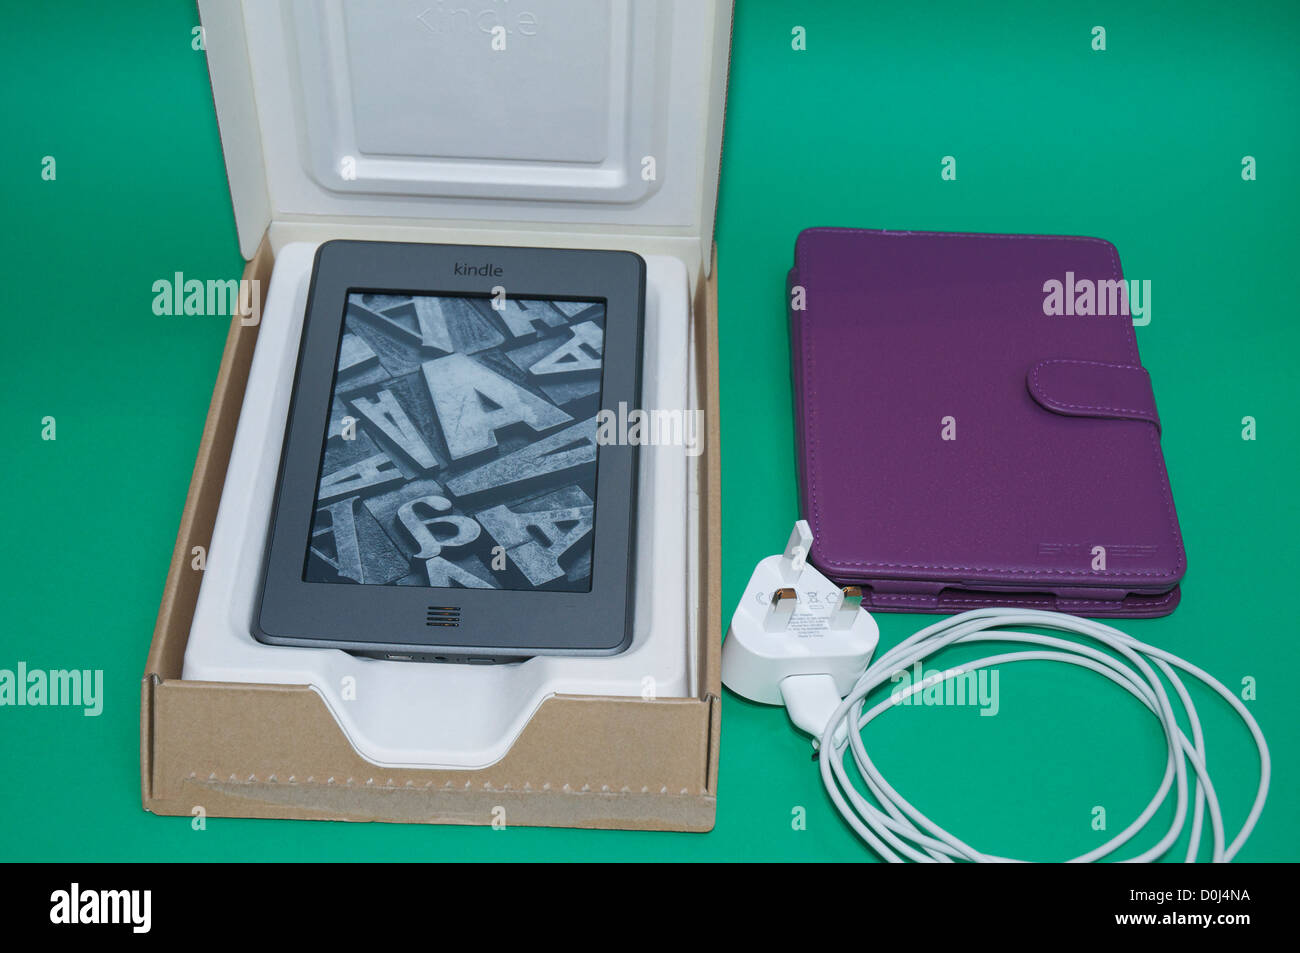 Amazon Kindle Touch e-book reader in original packaging with